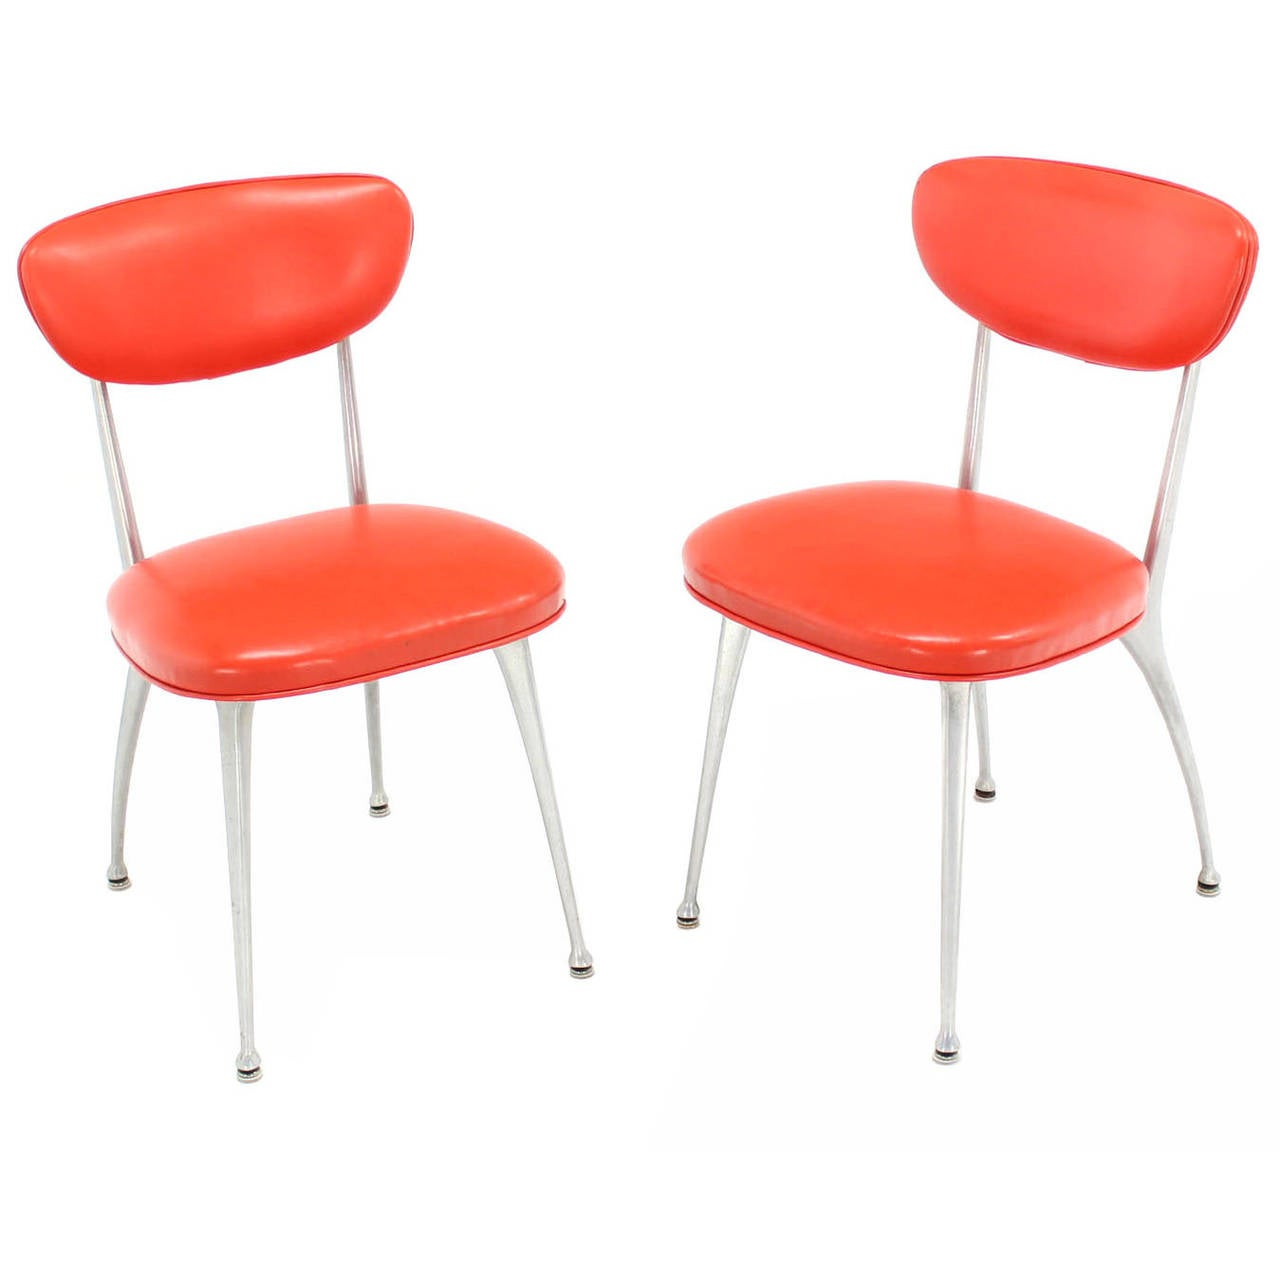 Pair of Red Vinyl Upholstery Cast Aluminum Sculptural Chairs